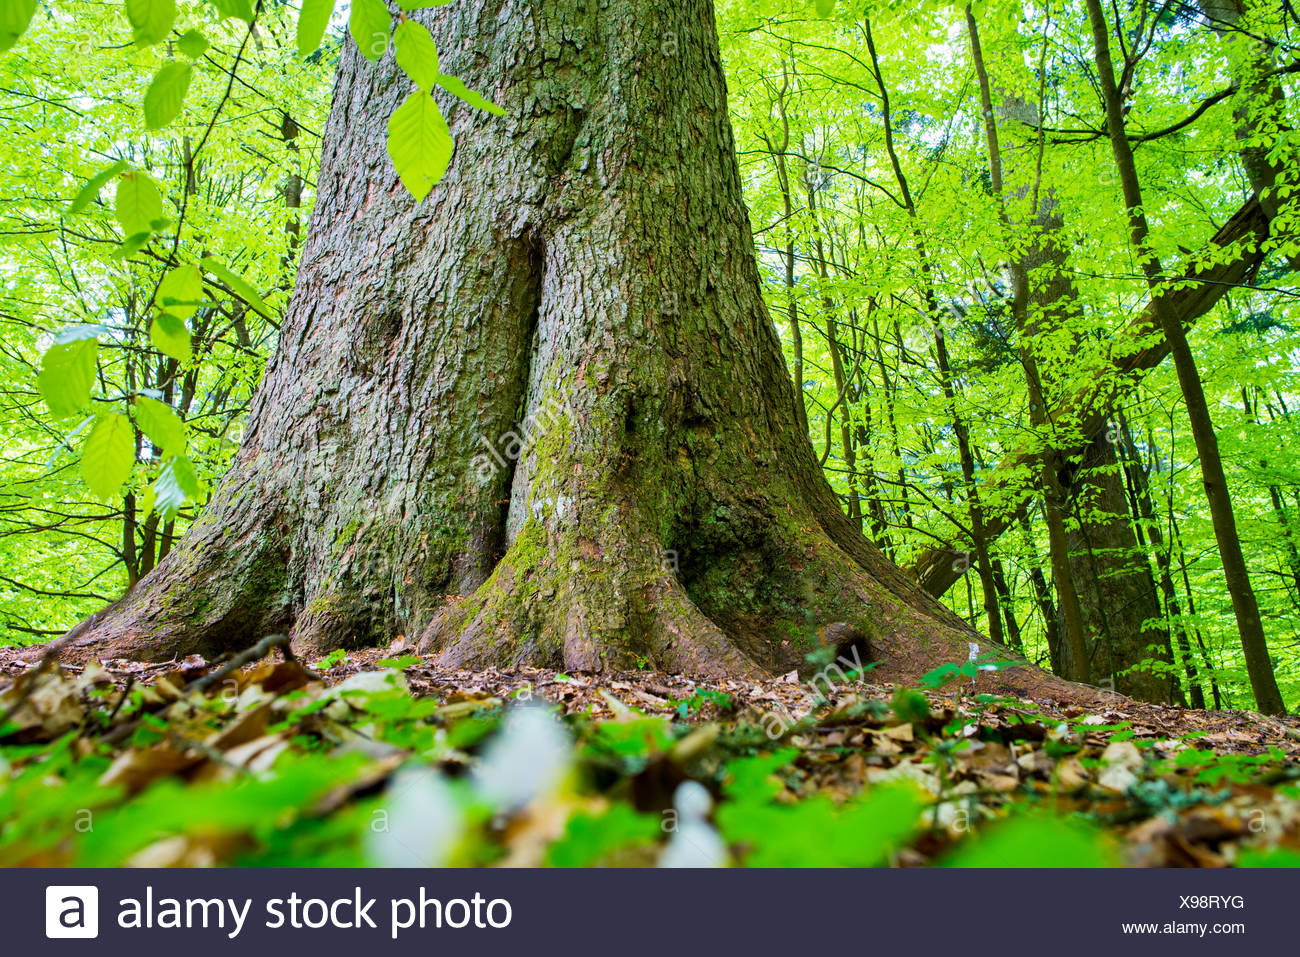 Primeval forest in the Bavarian forest National Park in Germany - Stock Image